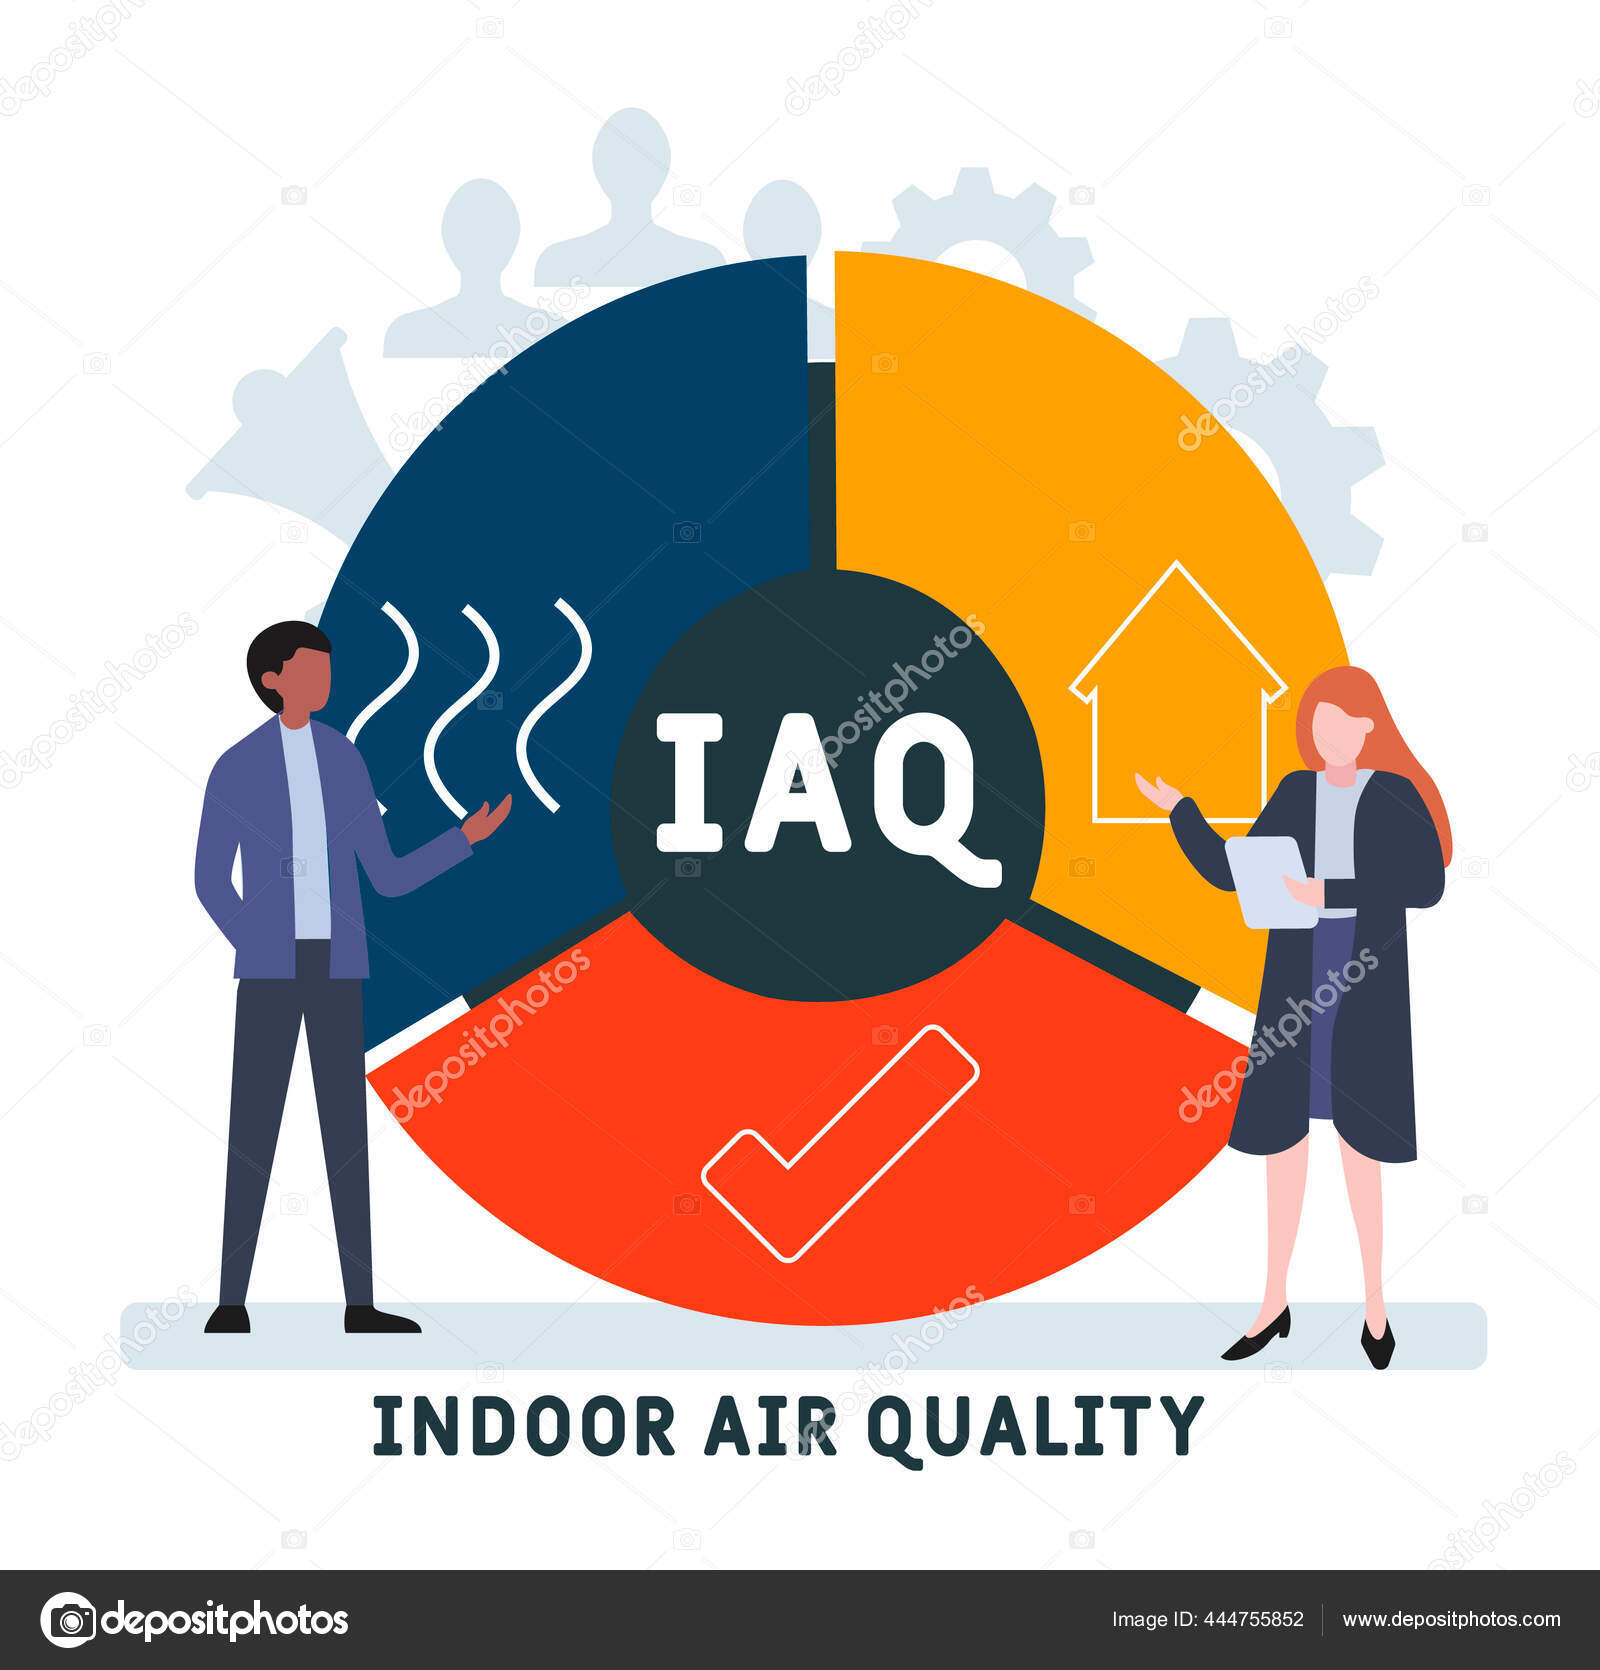 Iaq Indoor Air Quality Acronym Business Concept Background Vector  Illustration ⬇ Vector Image By © Lnc@list.ru | Vector Stock 444755852